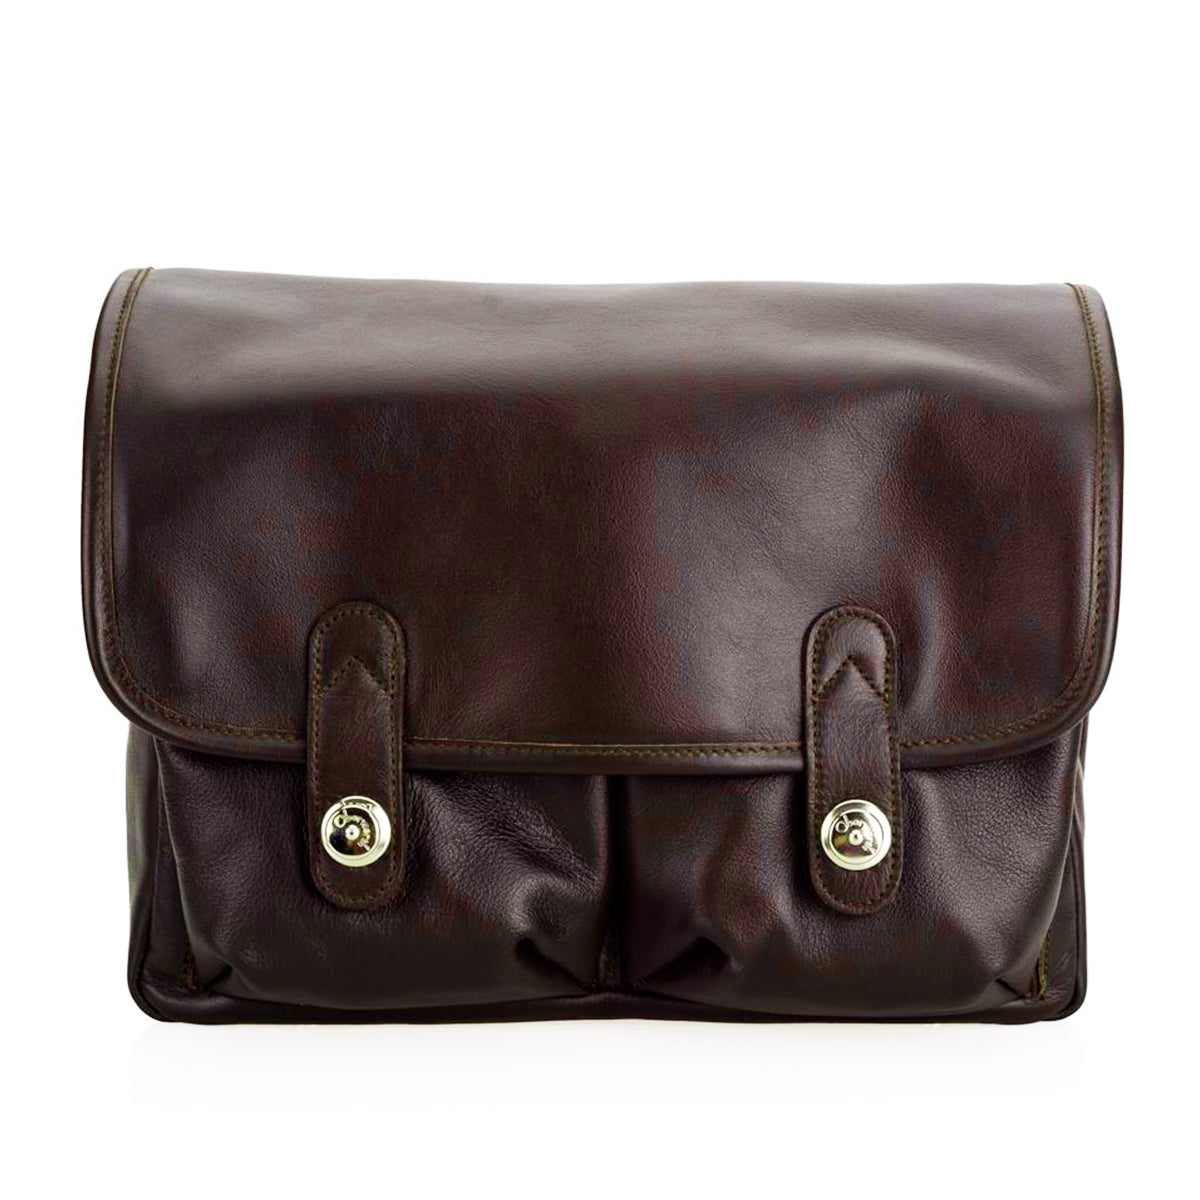 Oberwerth Boulevard Tablet - Leather Camera Bag, Brown